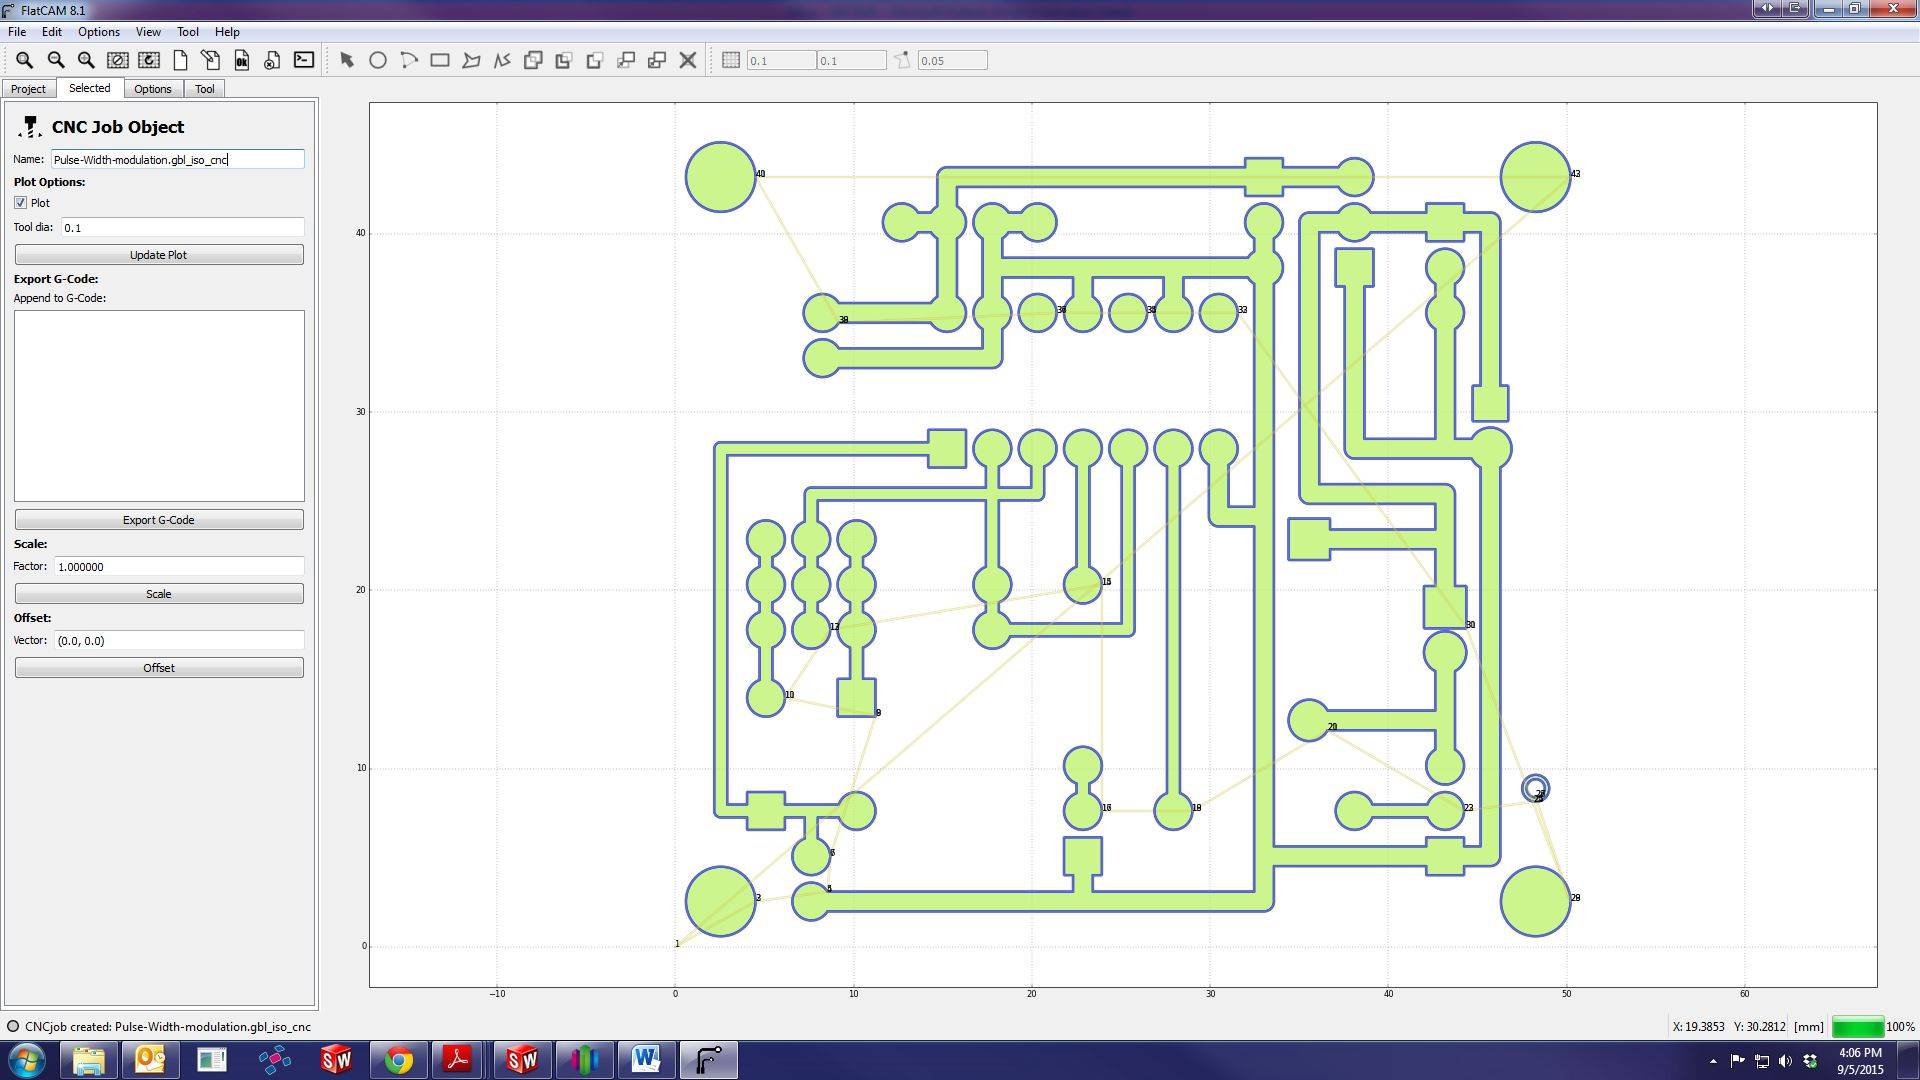 How To Mill A Through Hole Pcb Here Is The Final Circuit Image With Extra Thick Traces And Large Pads 4a